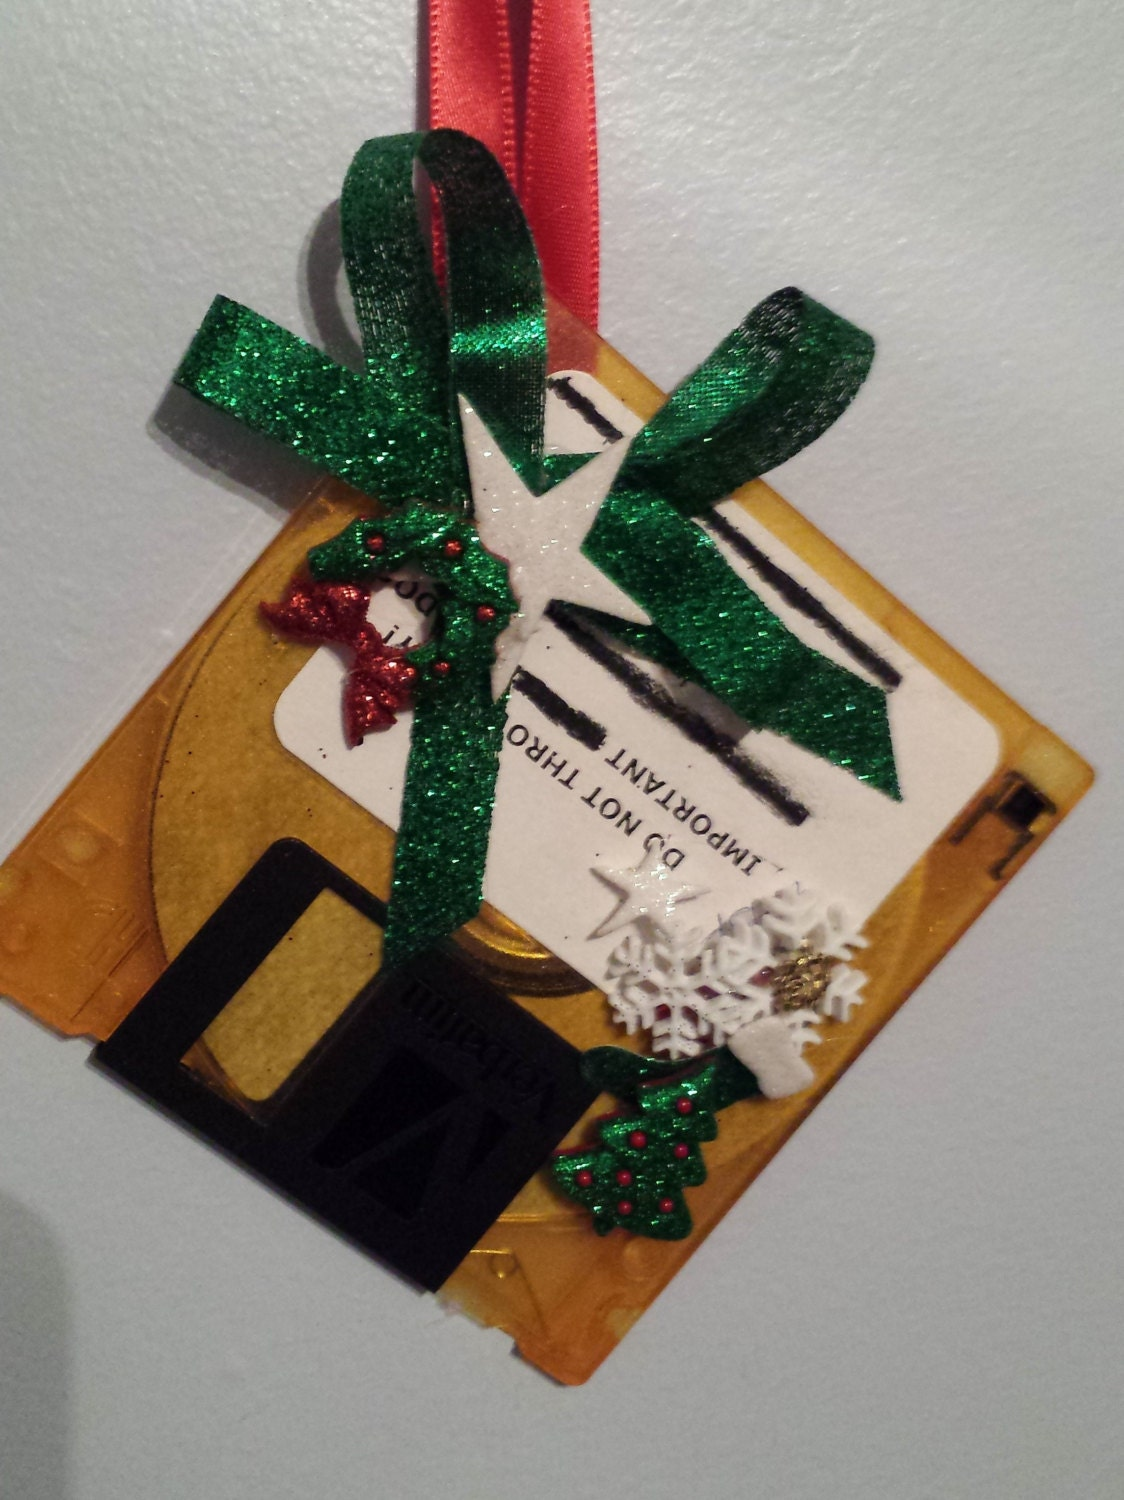 GEEK Christmas Ornament - Computer Floppy Disk with Mini Christmas Tree & Wreath